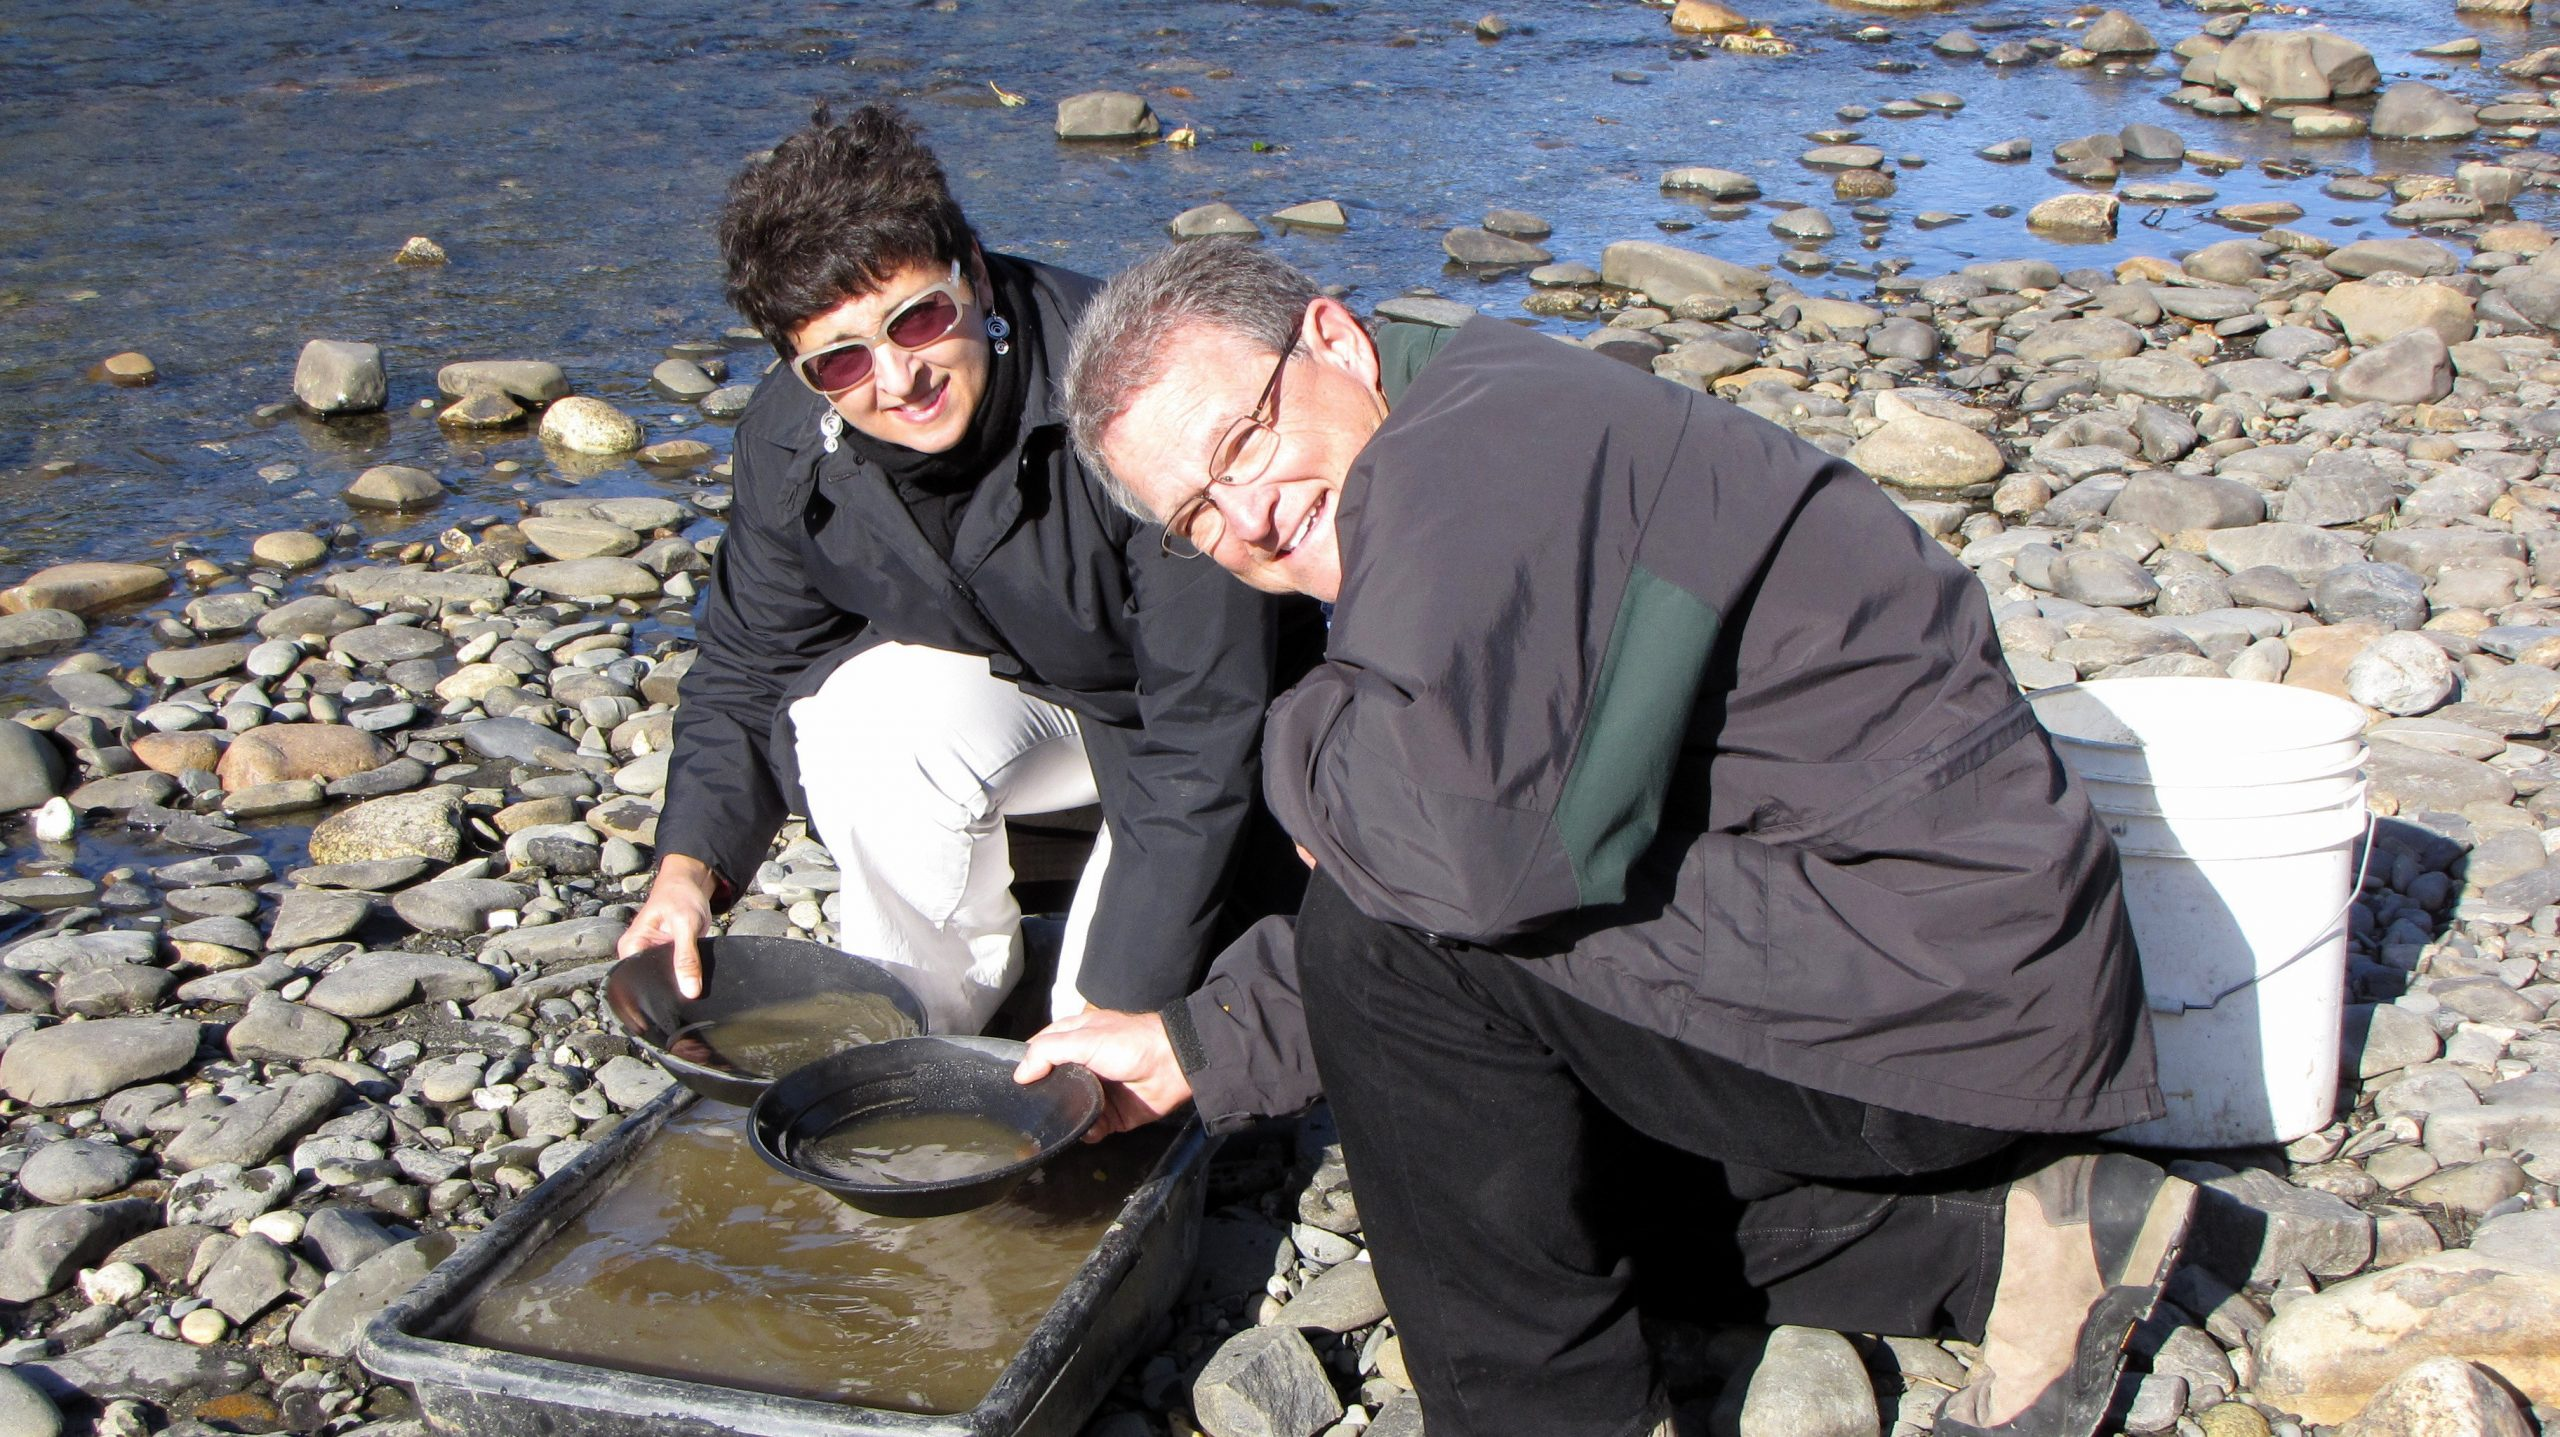 Charlie and Cindy panning for gold.